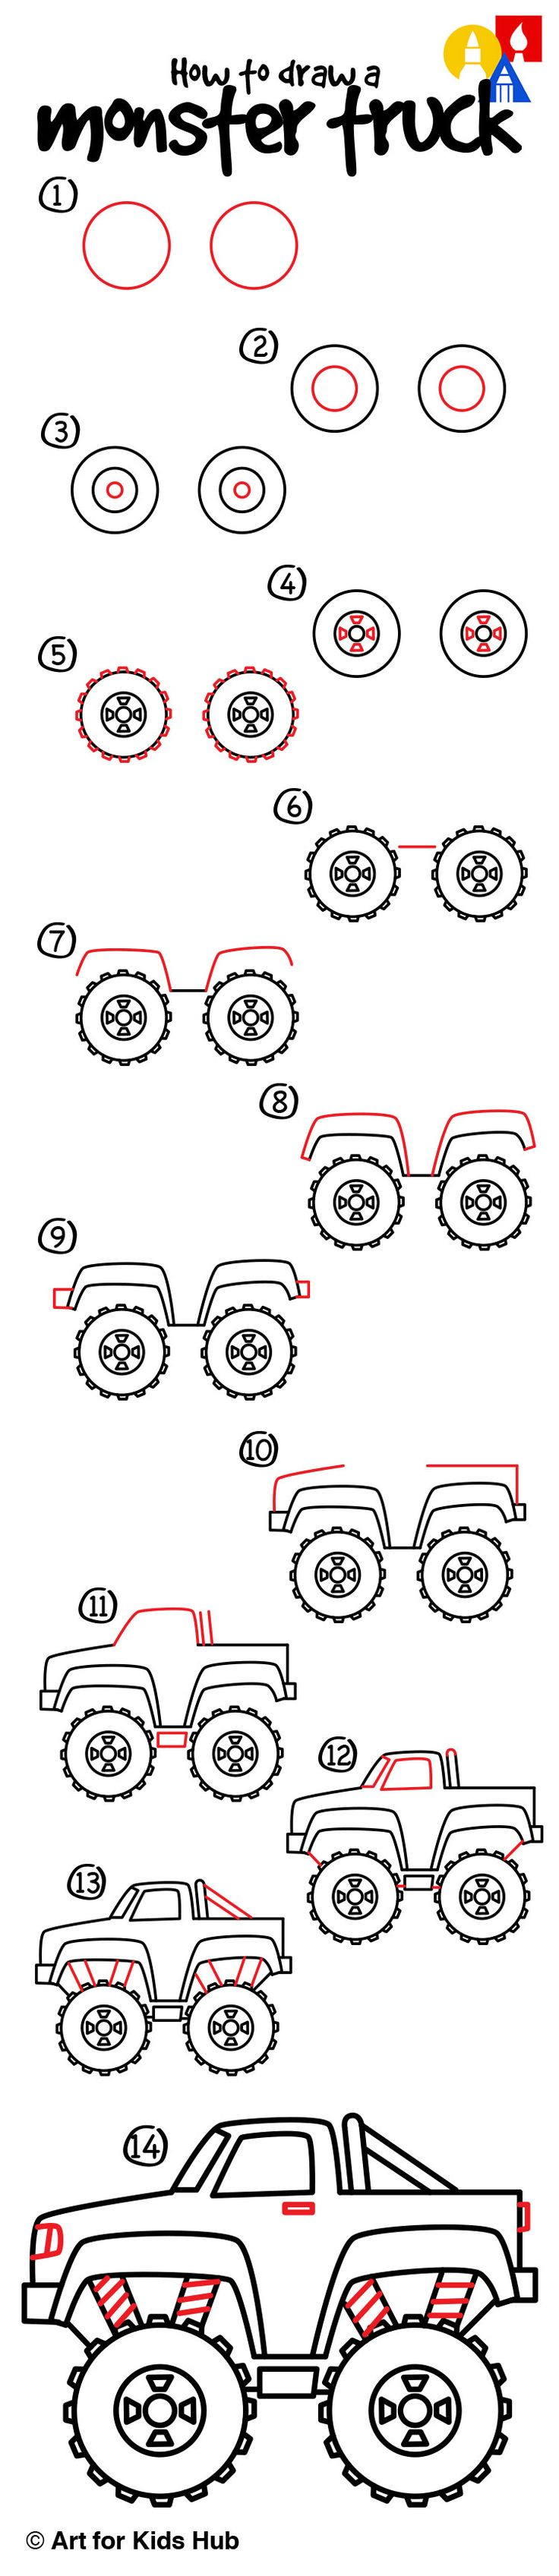 Learn how to draw a monster truck with these simple steps, just for kids. Watch the short video and follow along to draw your own.